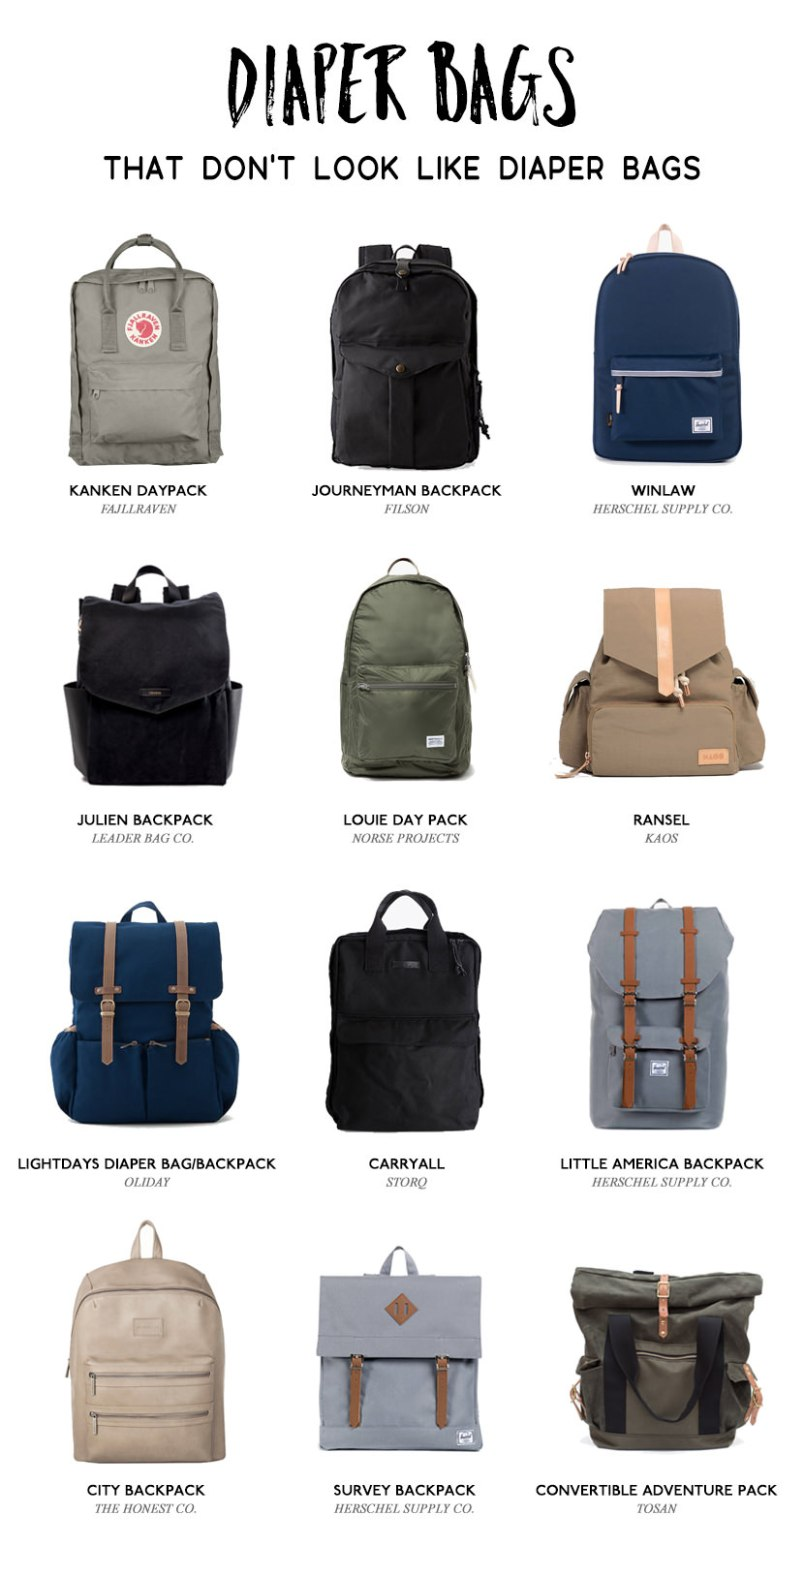 best diaper bags for dads